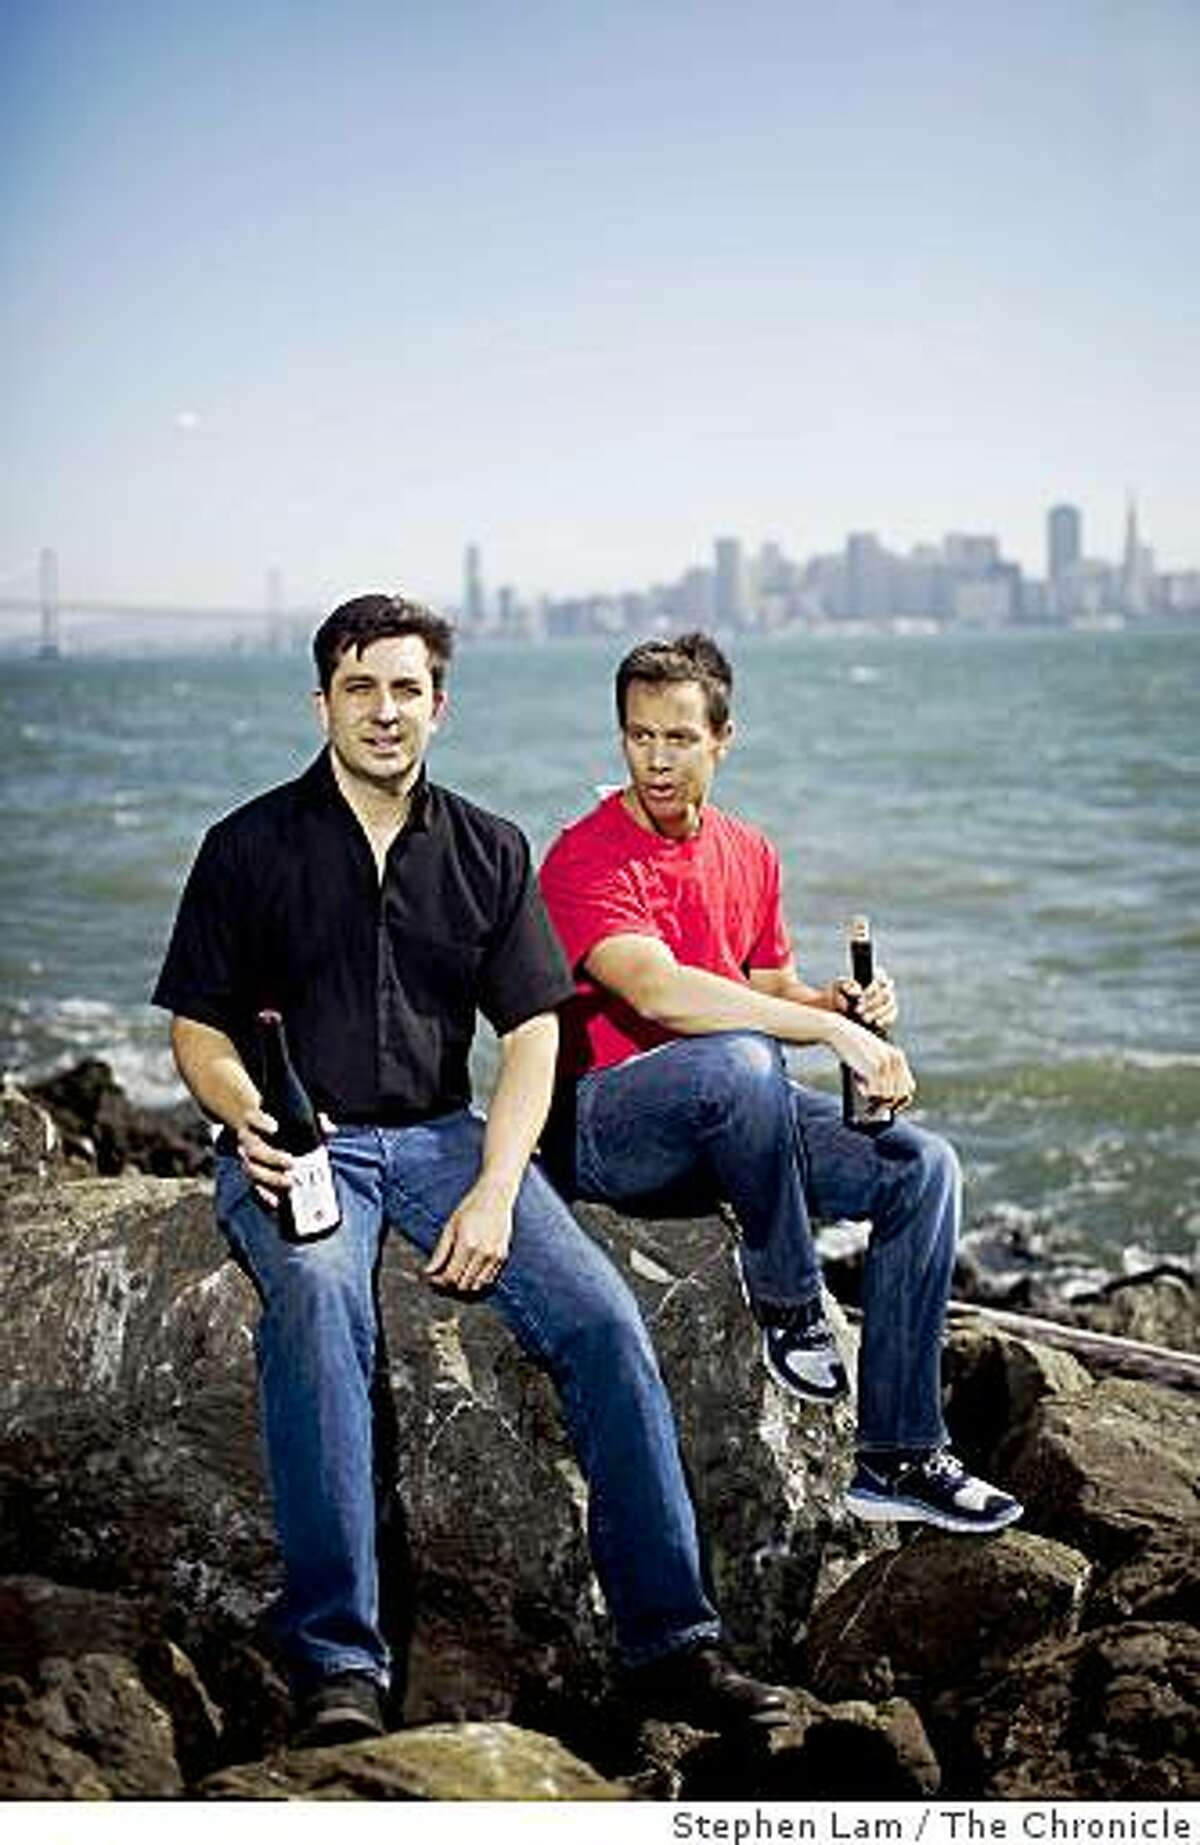 Winemaker Bryan Kane, left, and Assistant Winemaker Todd Seaver, right, of San Francisco's VIE winery poses for a photo near their winemaking facility on in San Francisco's Treasure Island Friday, July 10, 2009.